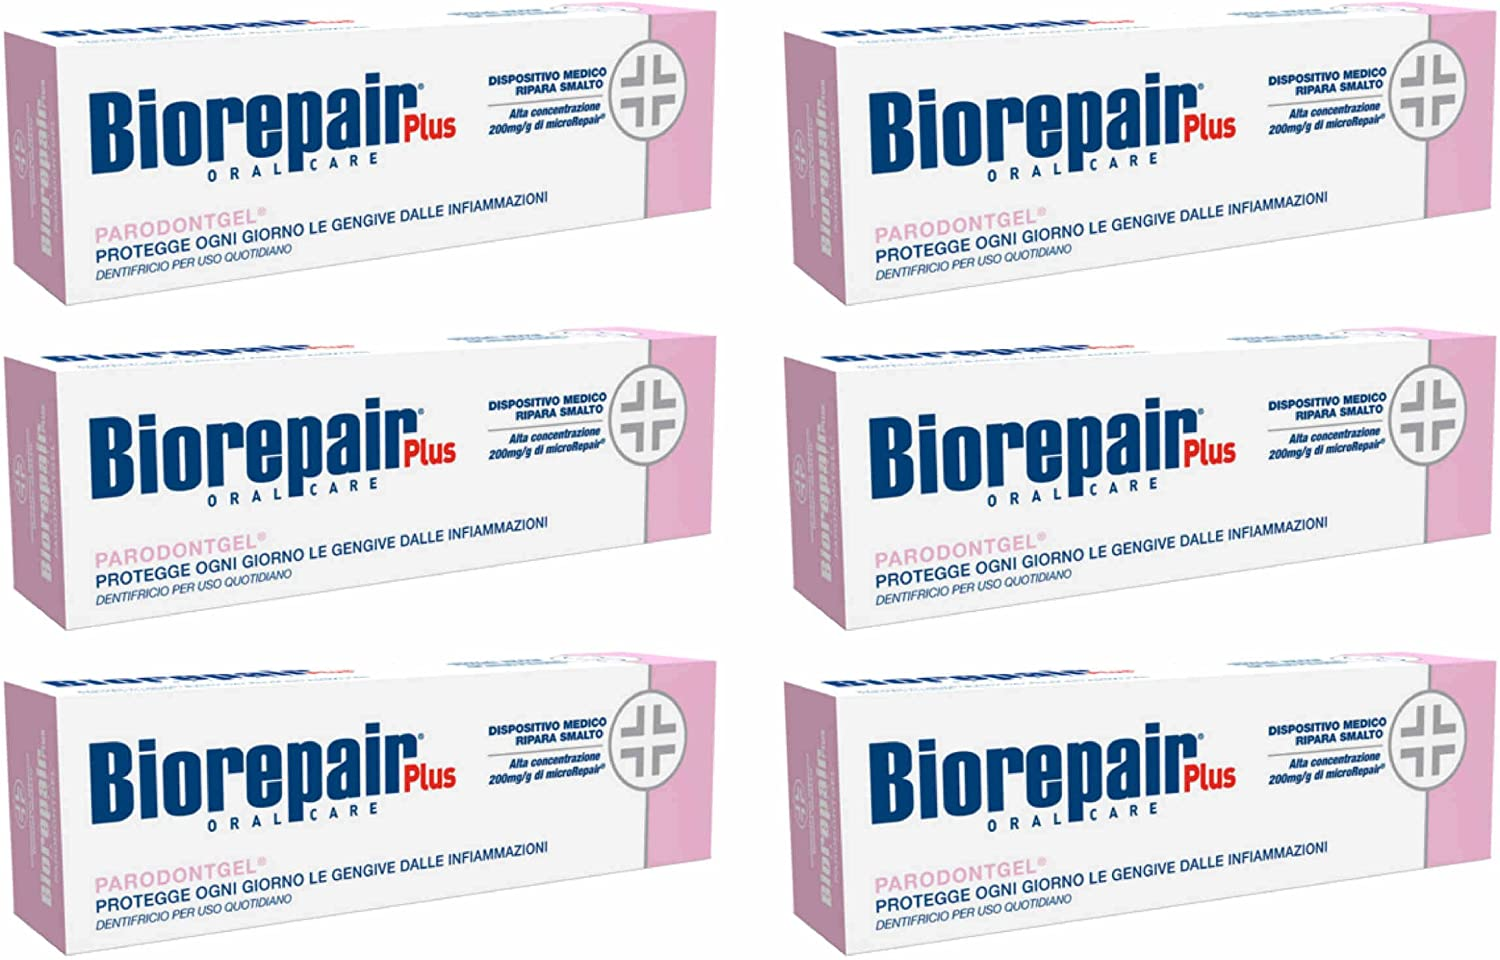 Biorepair Parodontgel® Daily Toothpaste - 2.54 Fluid Ounces (75ml) Tubes (Pack of 6) [ Italian Import ]